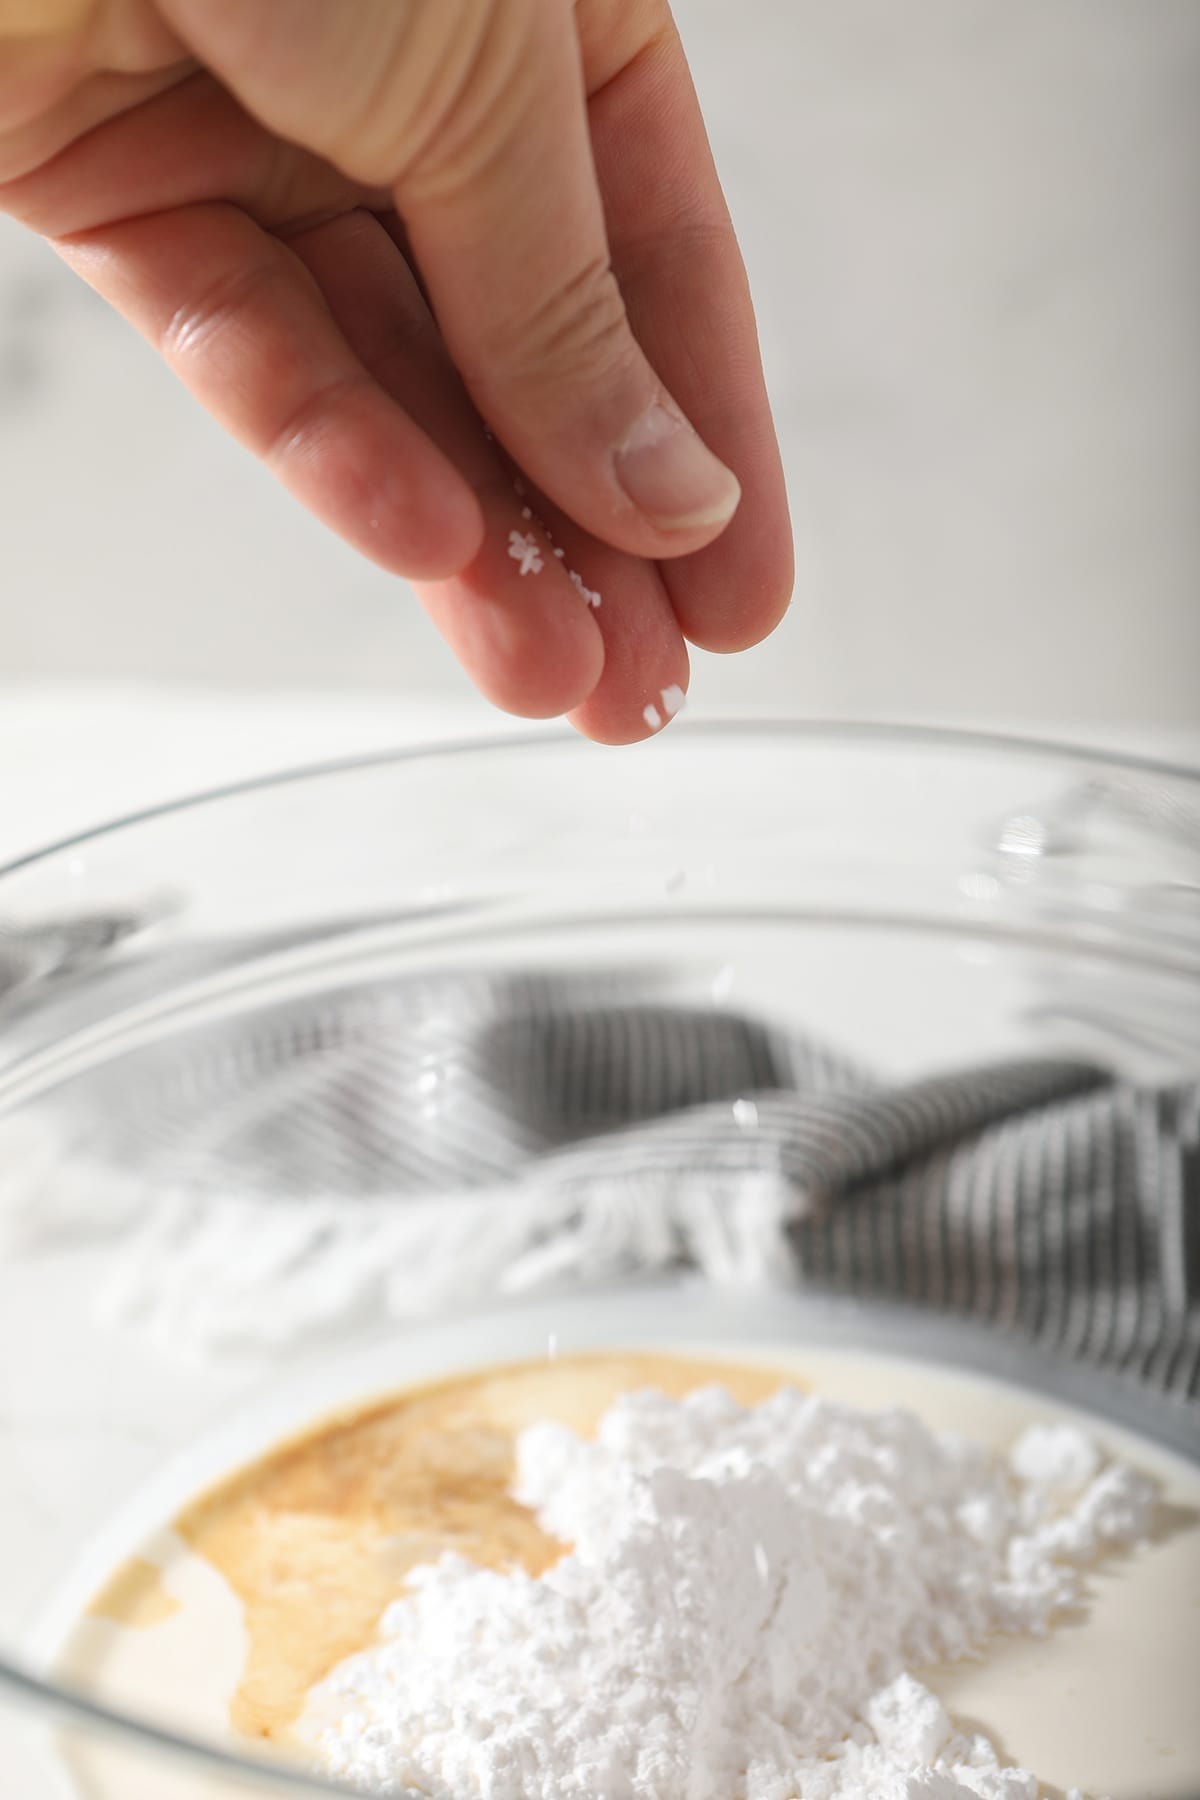 A hand sprinkles salt into a bowl holding cream, powdered sugar and vanilla